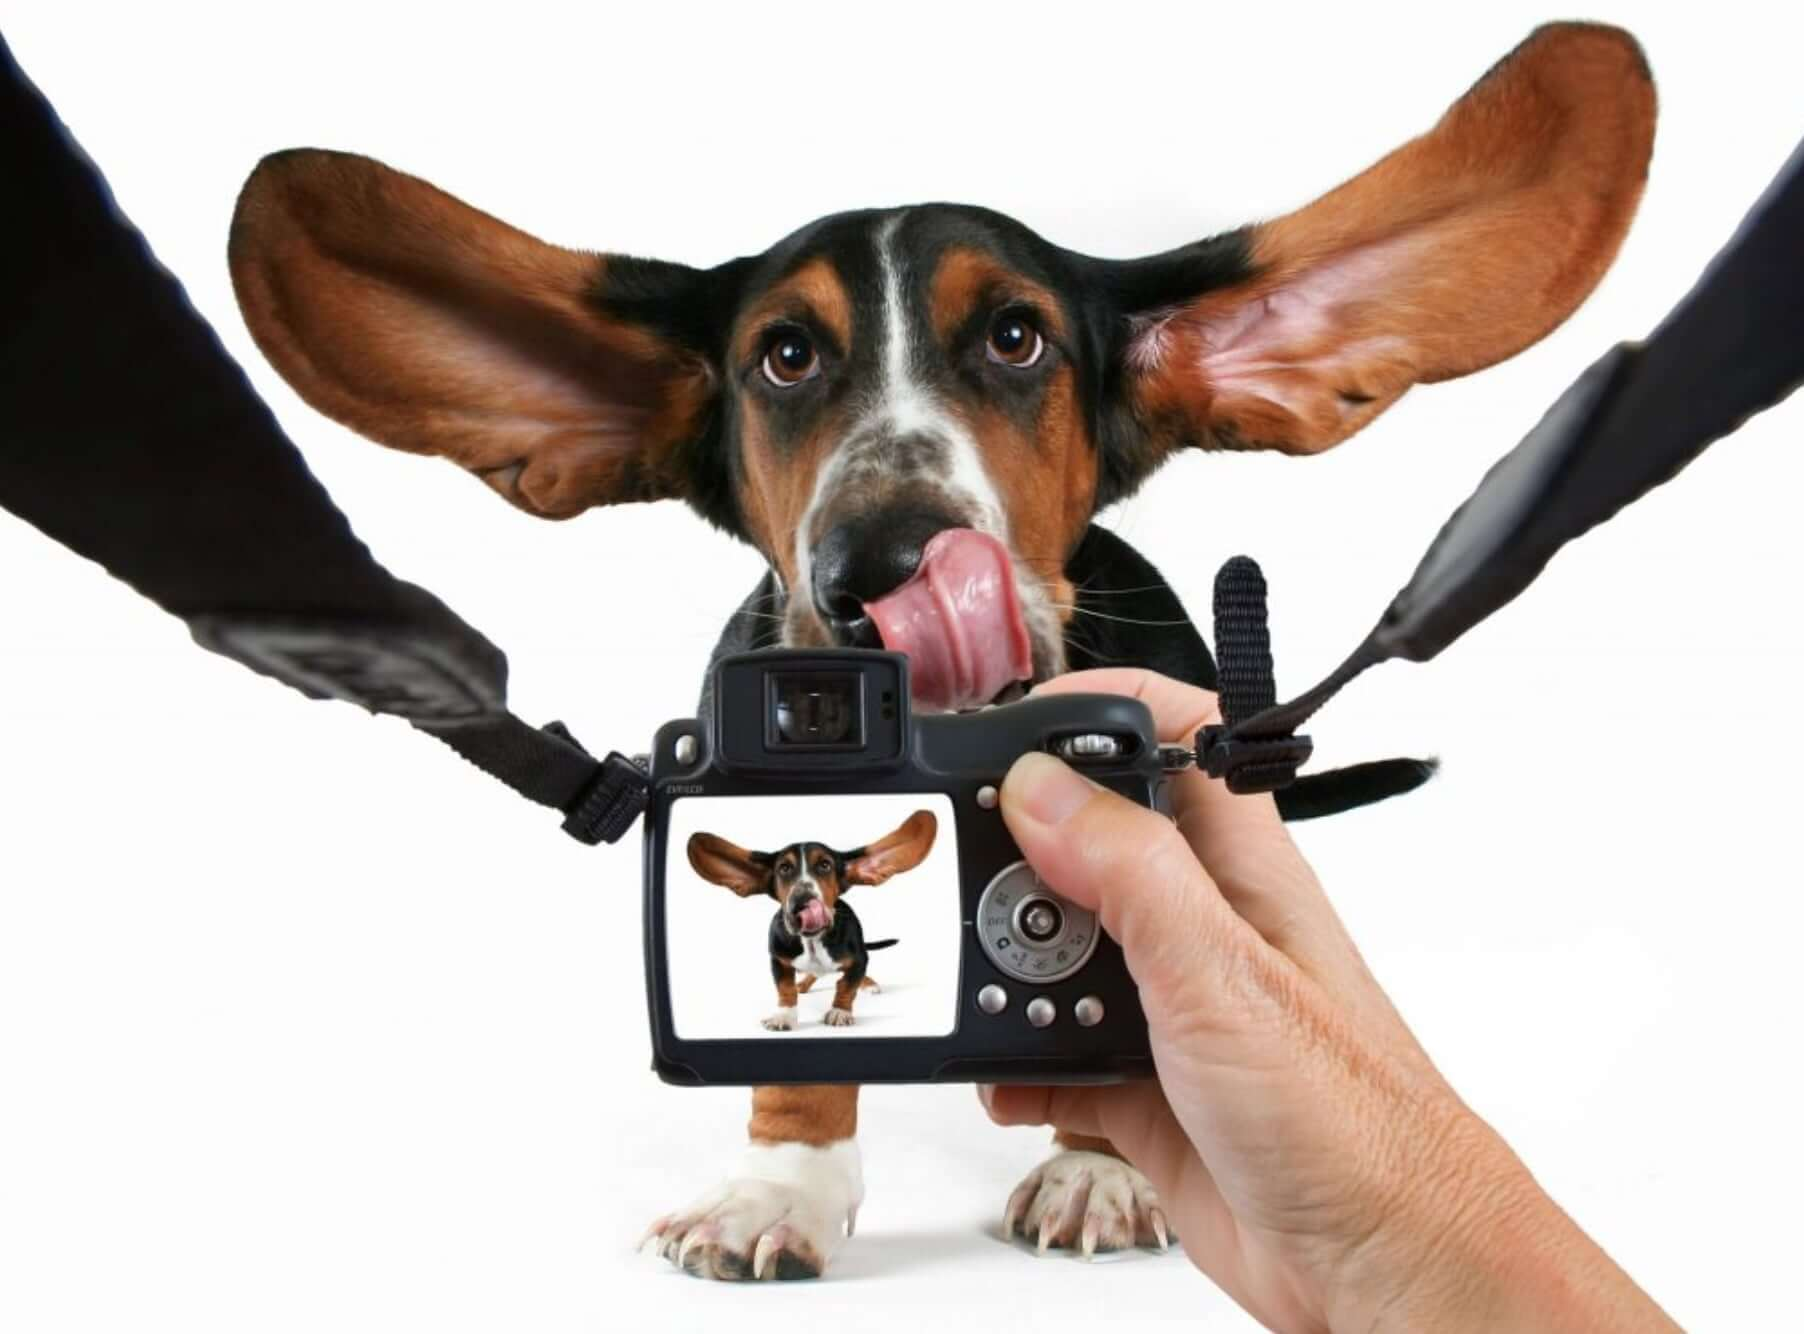 funny dog with sweet ears in the air pose for the camera